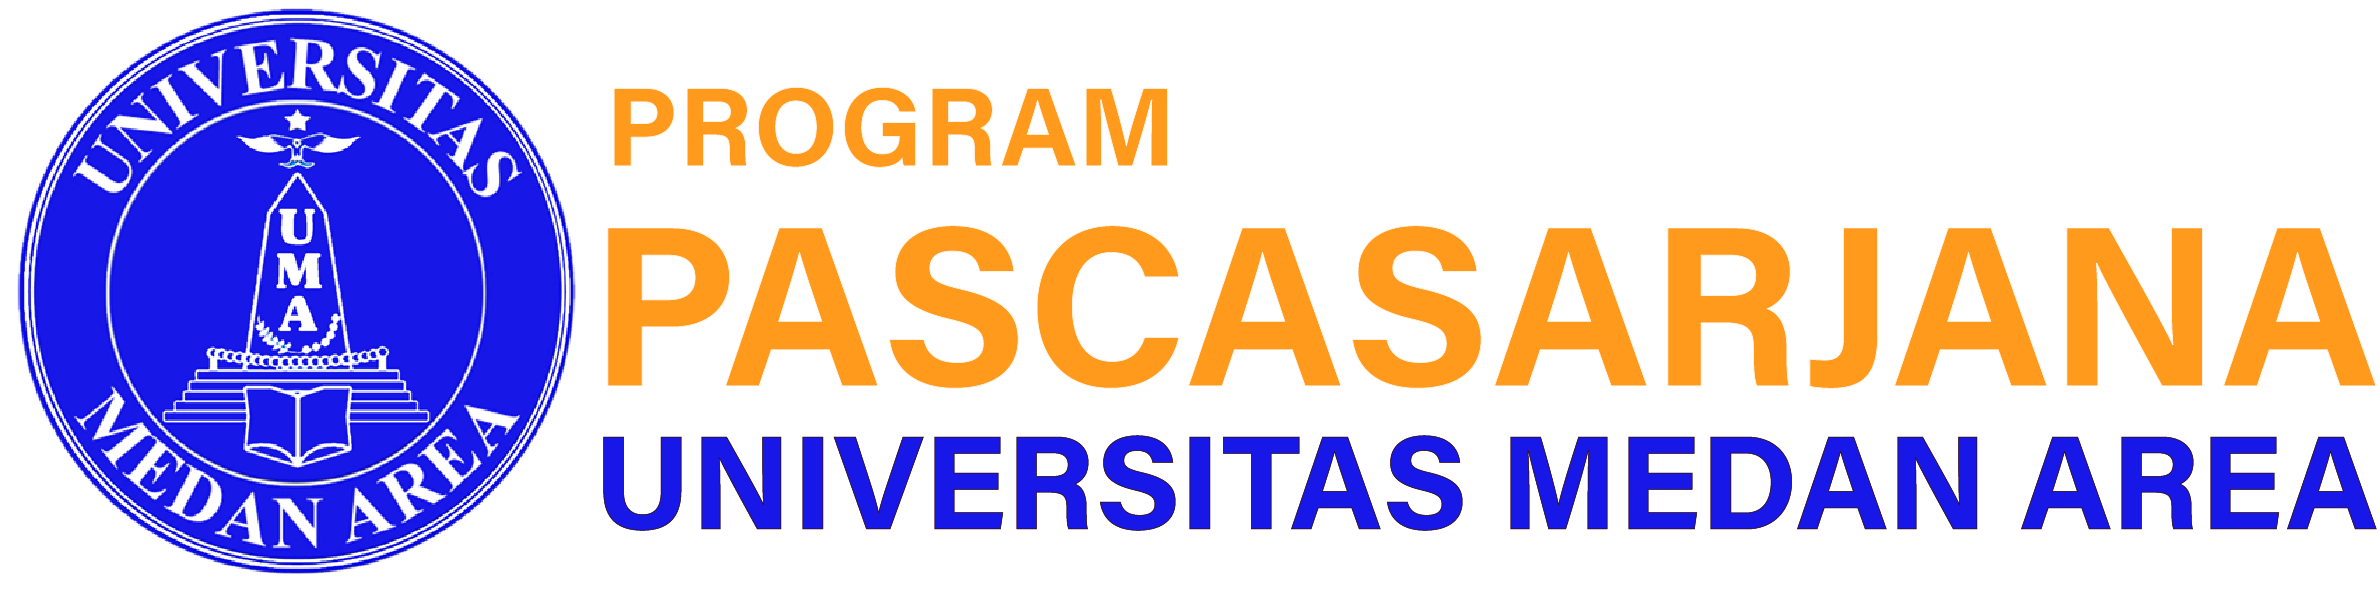 Program Pascasarjana Universitas Medan Area | Program Pascasarjana Terbaik di Sumatera Utara